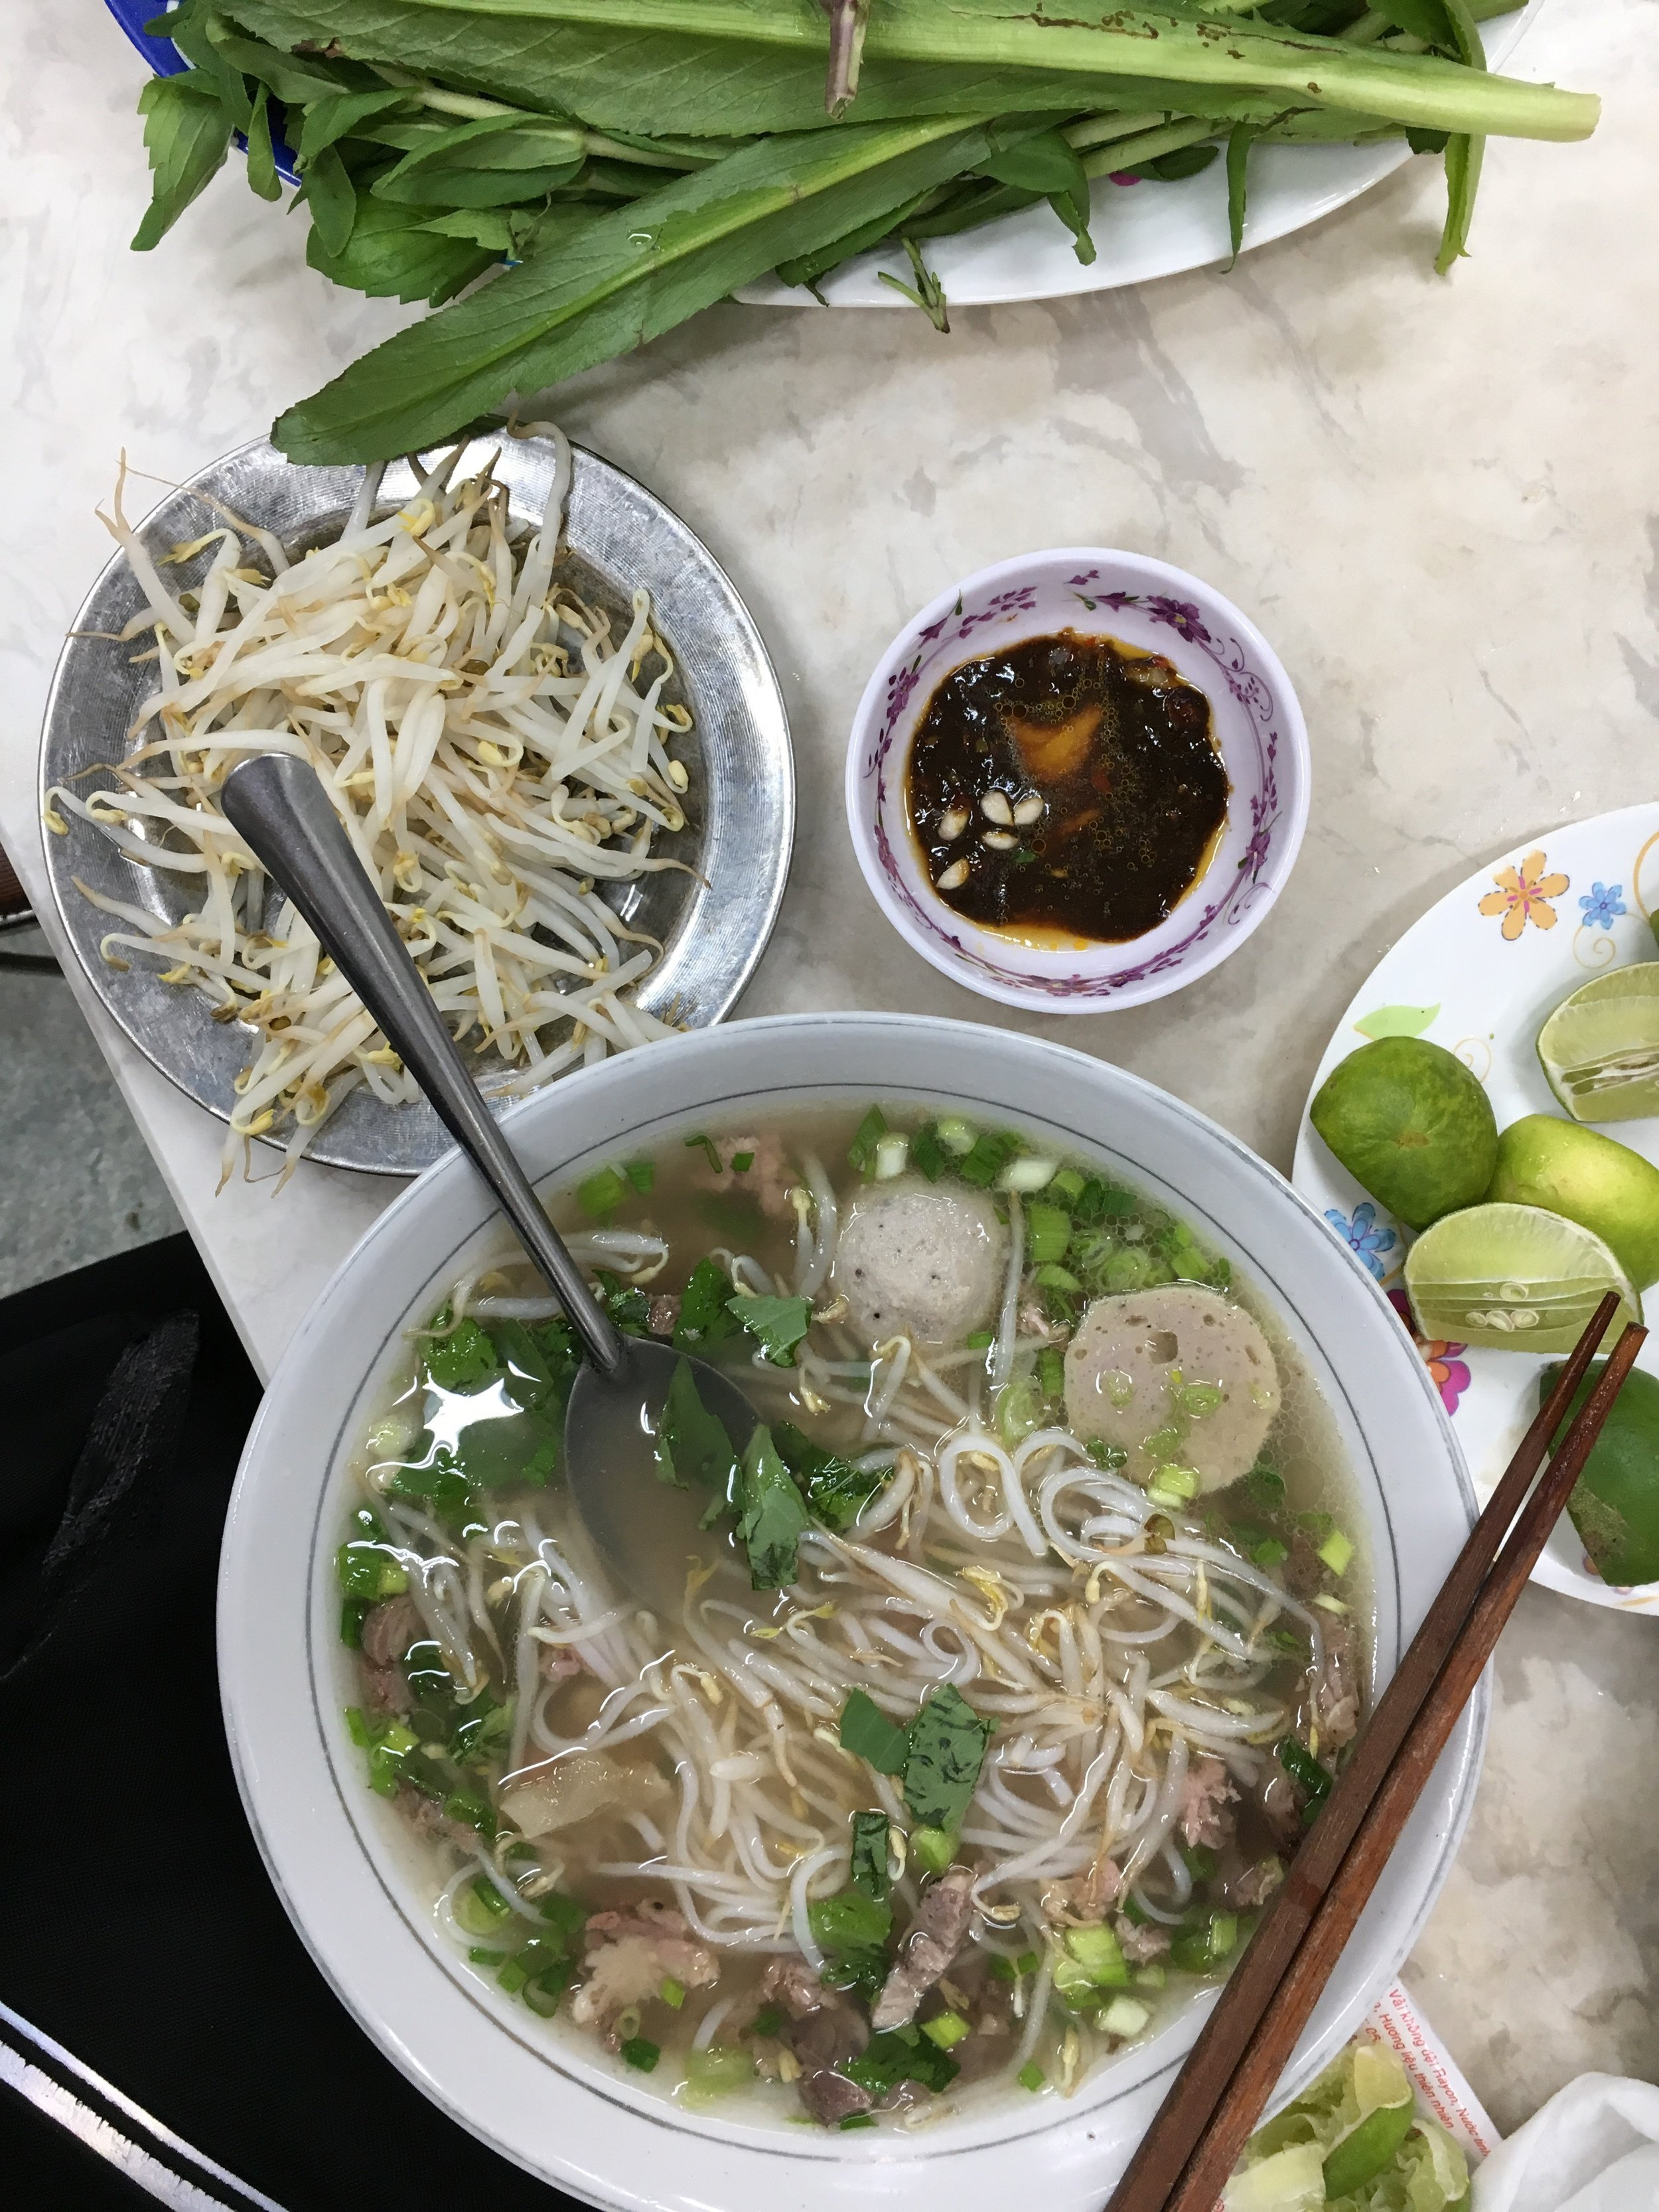 It comes with herbs - basil, coriander, and mint, and comes with beansprouts and sauces to add. This is after mixing a few of the ingredients together. Just a little bit of something can change the atmosphere of the entire bowl. You've got to find what's right for your taste buds.